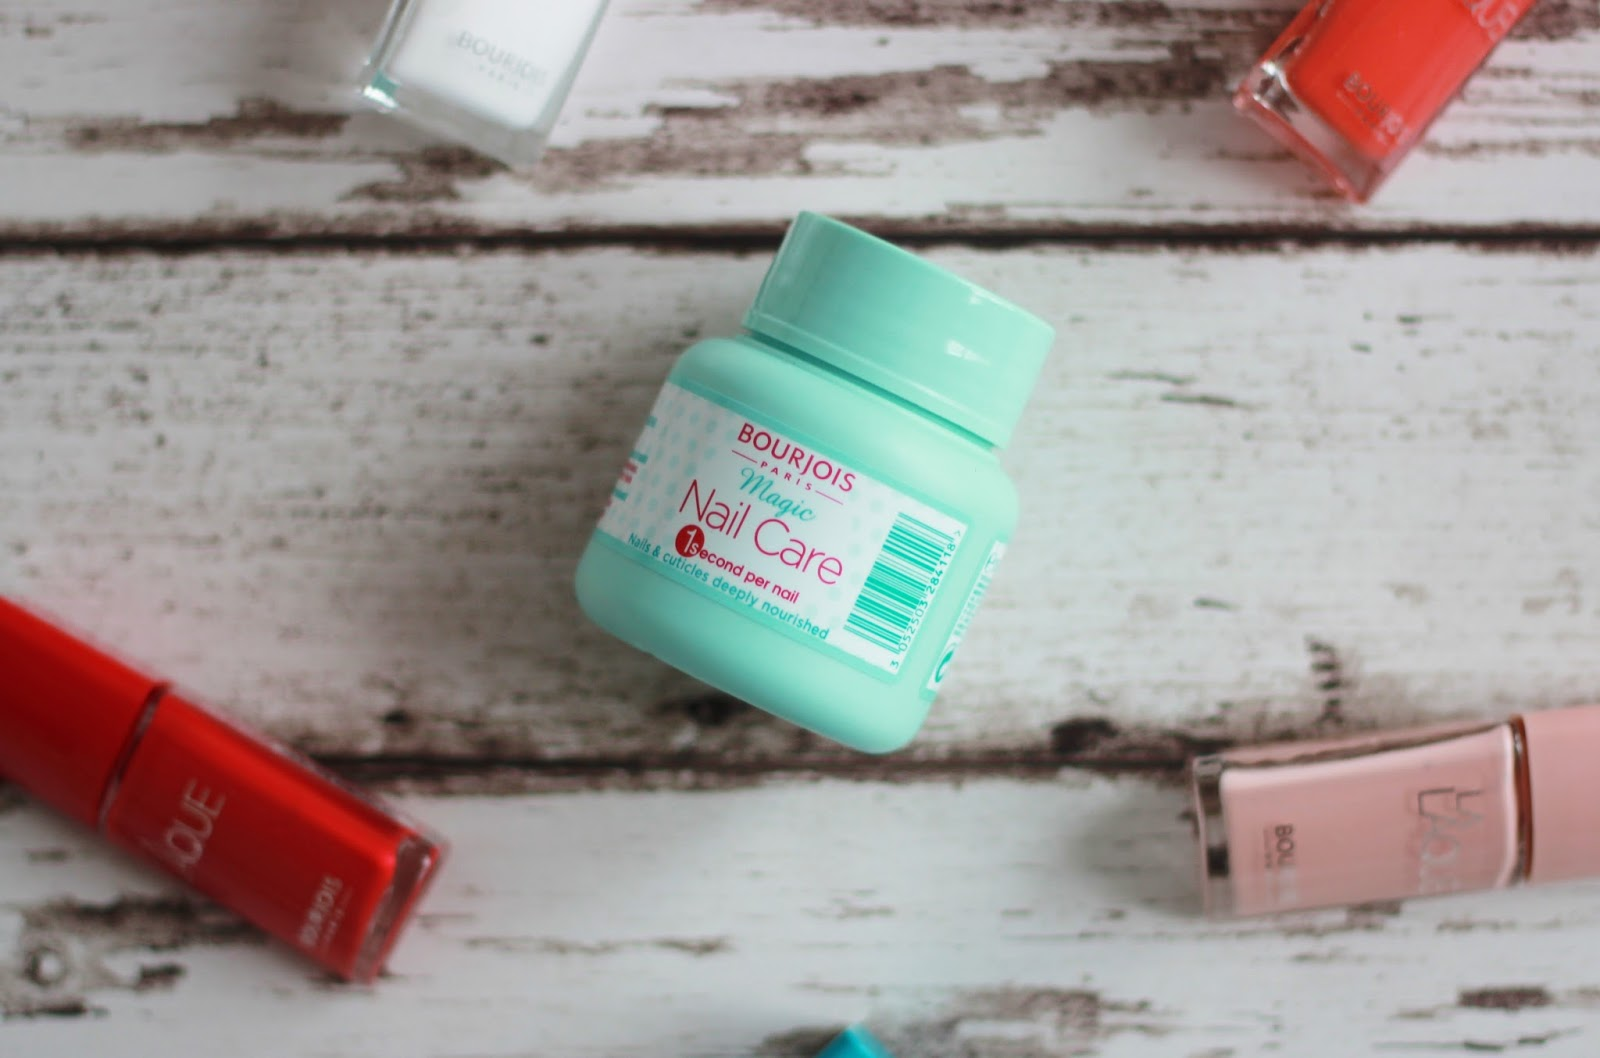 Bourjois Magic Nail Care pot